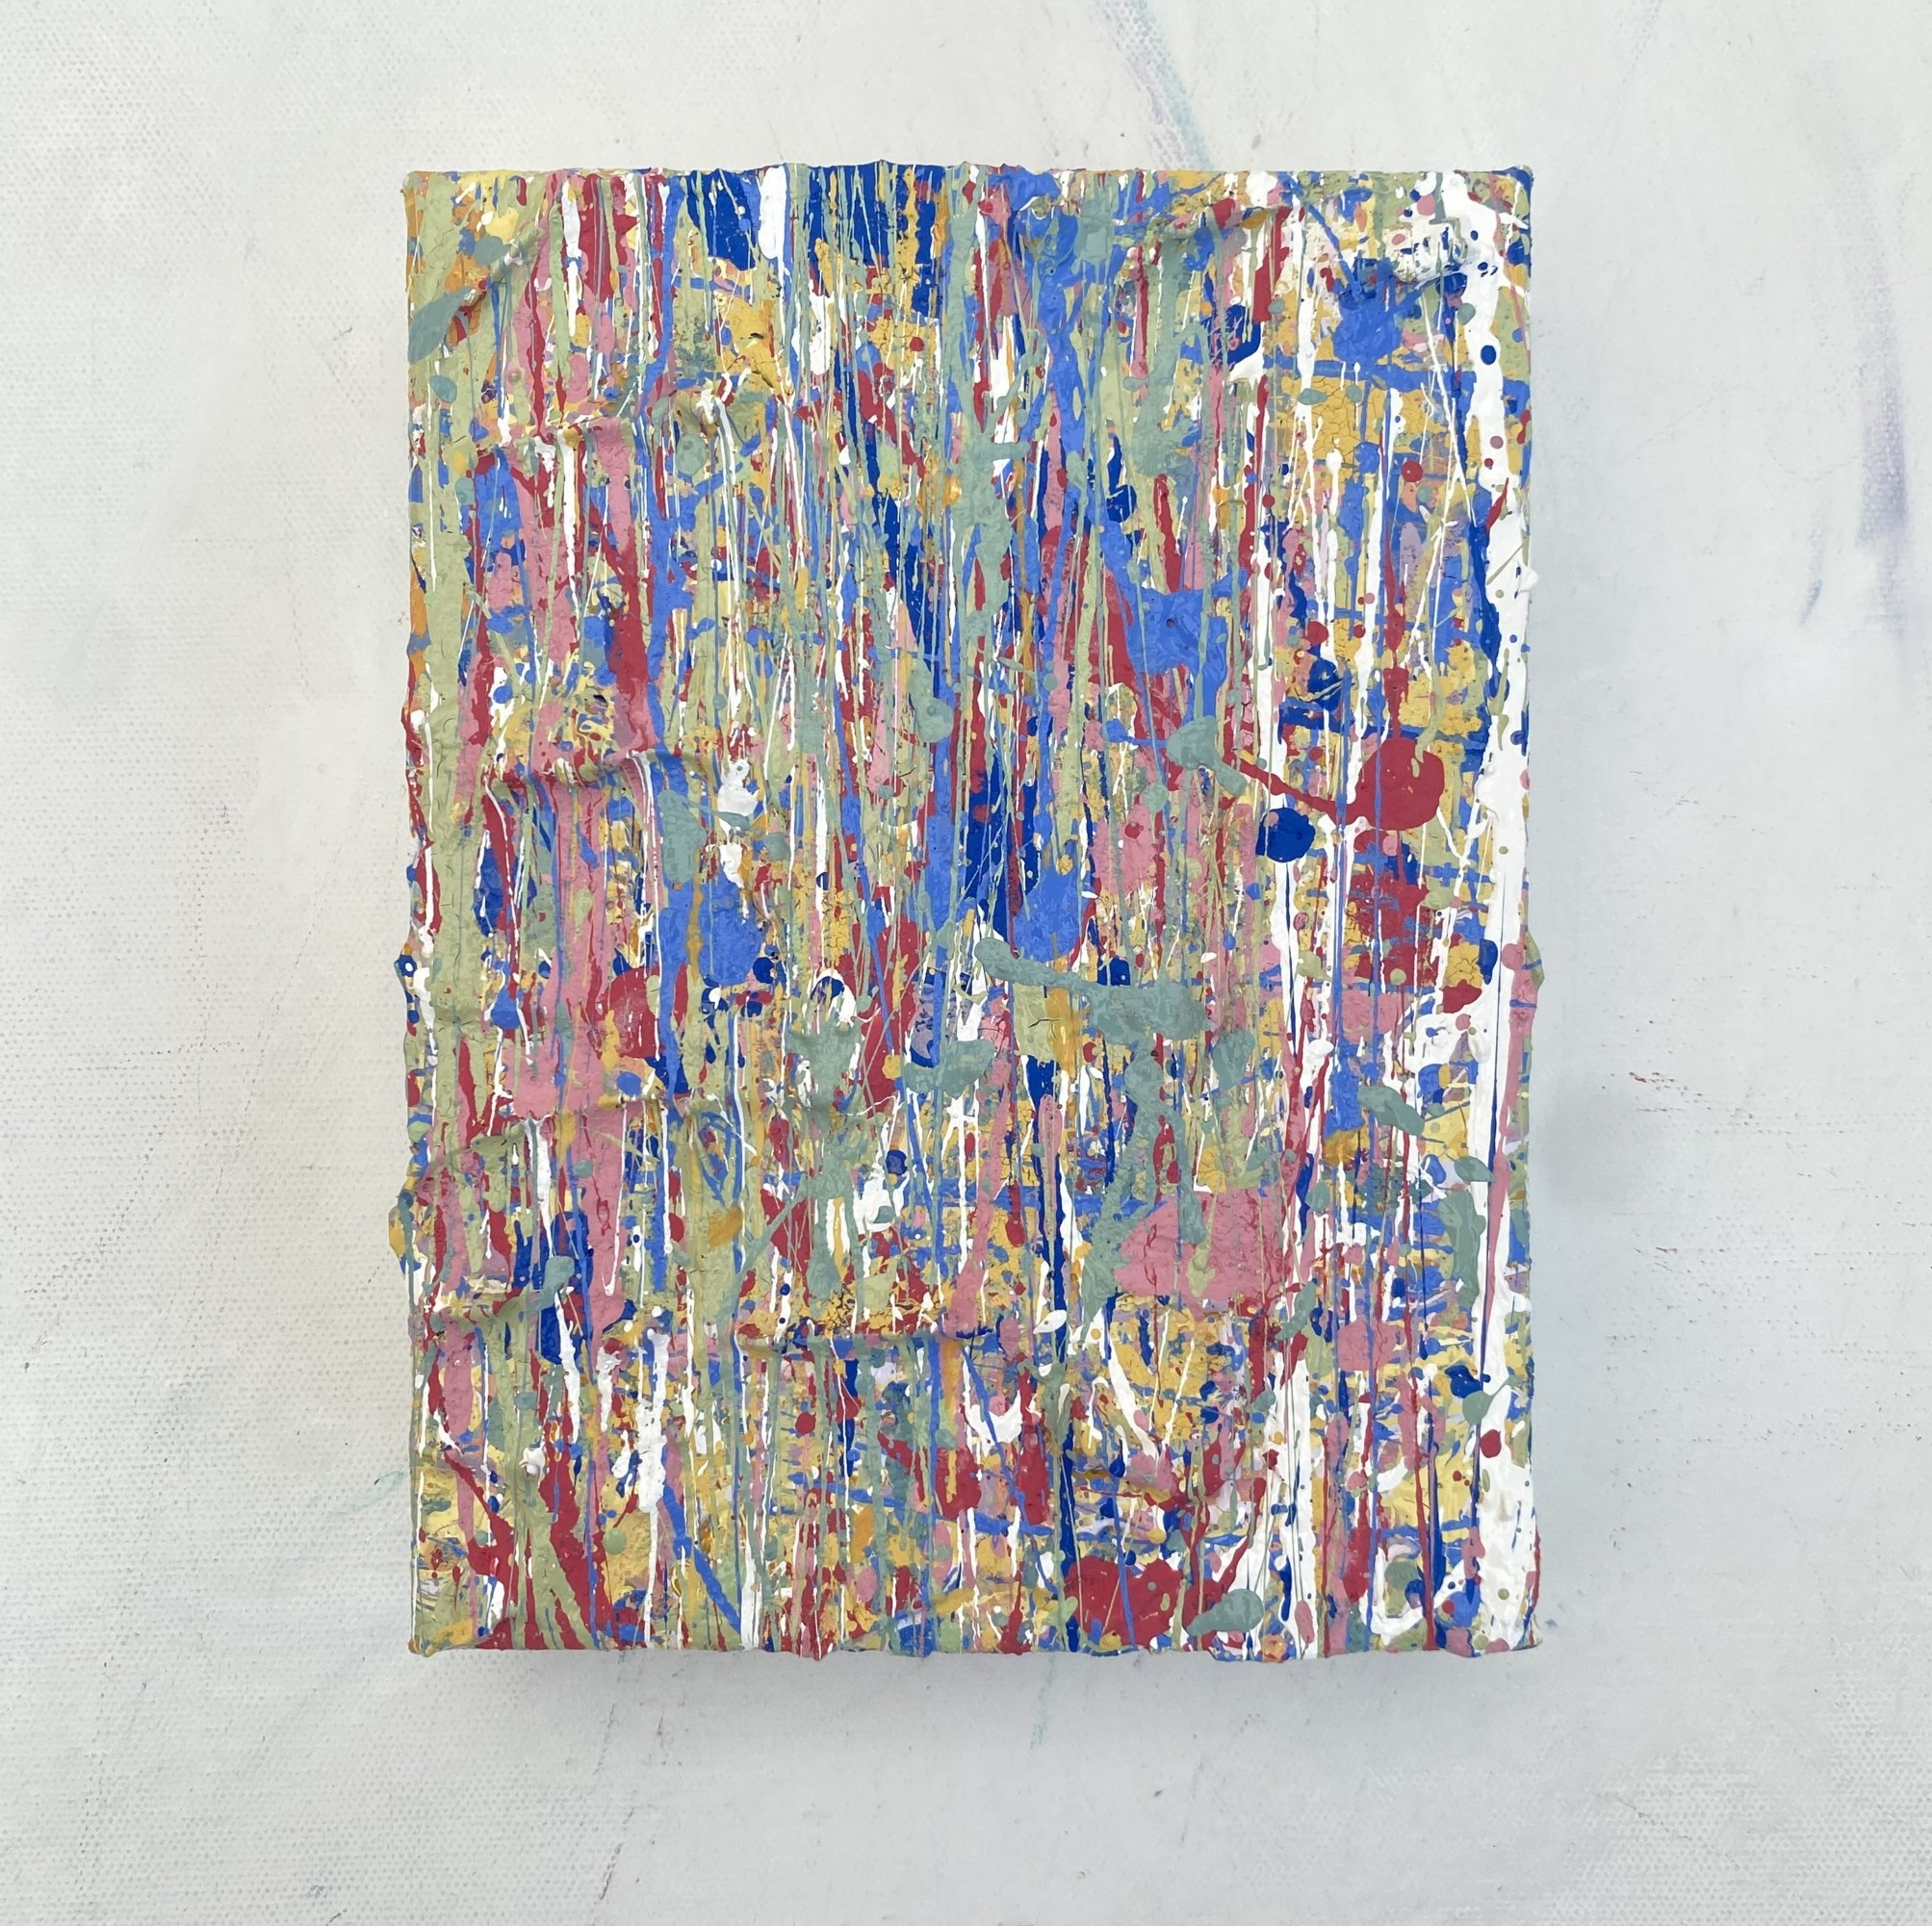 galley view of Elements Four a colourful abstract artwork created using plastic free environmentally friendly paints by somerset artist emily duchscherer kirk